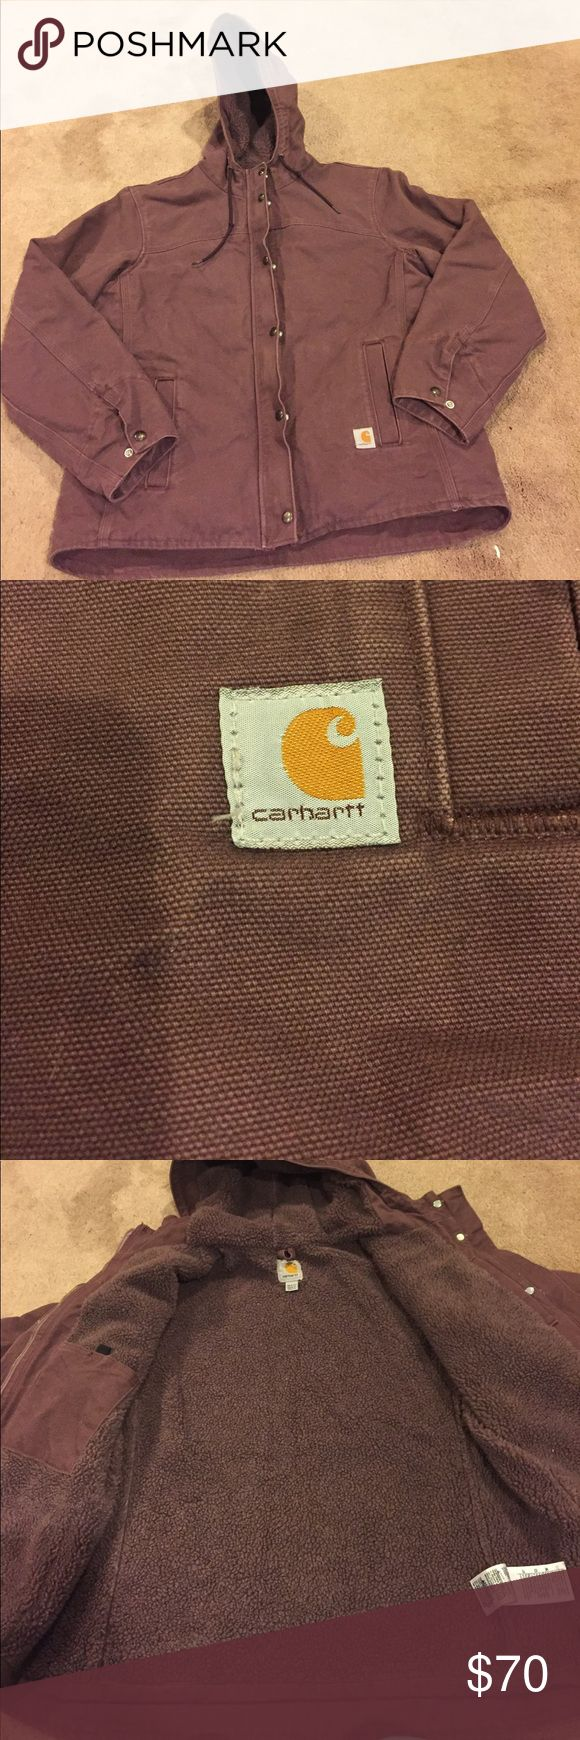 Carhartt coat Women's carhartt coat. Color is a faded purple (def. unique). Wool lined with a large inside pocket. Good is also wool lined. From zips and has snaps to snap over the zipper. Wrists have 2 snaps for an adjustable fit. 2 pockets on the outside. Back is slightly tapered for a longer fit around the butt (see picture). Only worn 2 times. Perfect condition! Carhartt Jackets & Coats